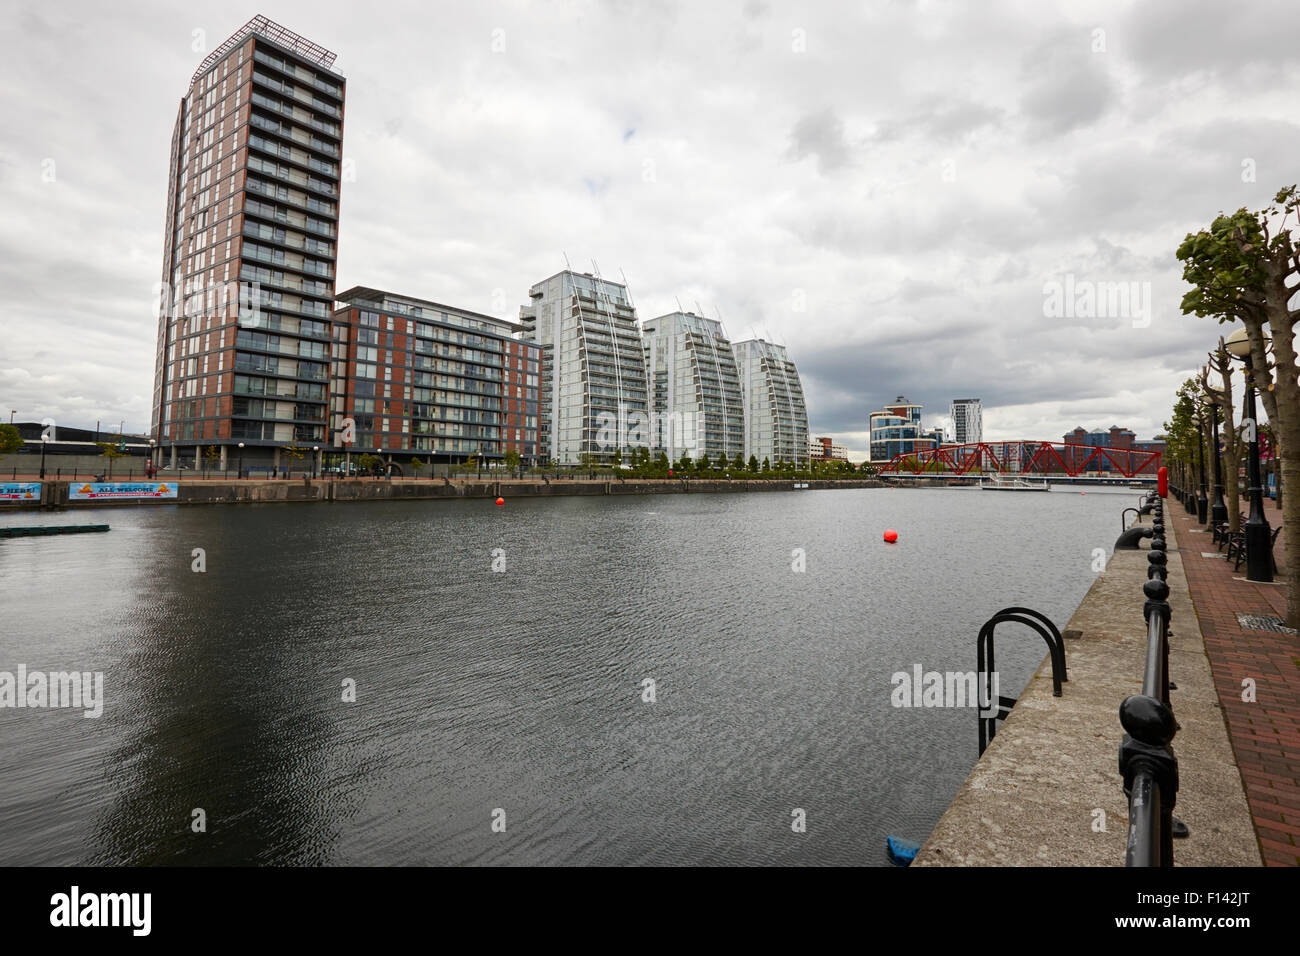 city lofts and nv buildings salford quays Manchester uk - Stock Image